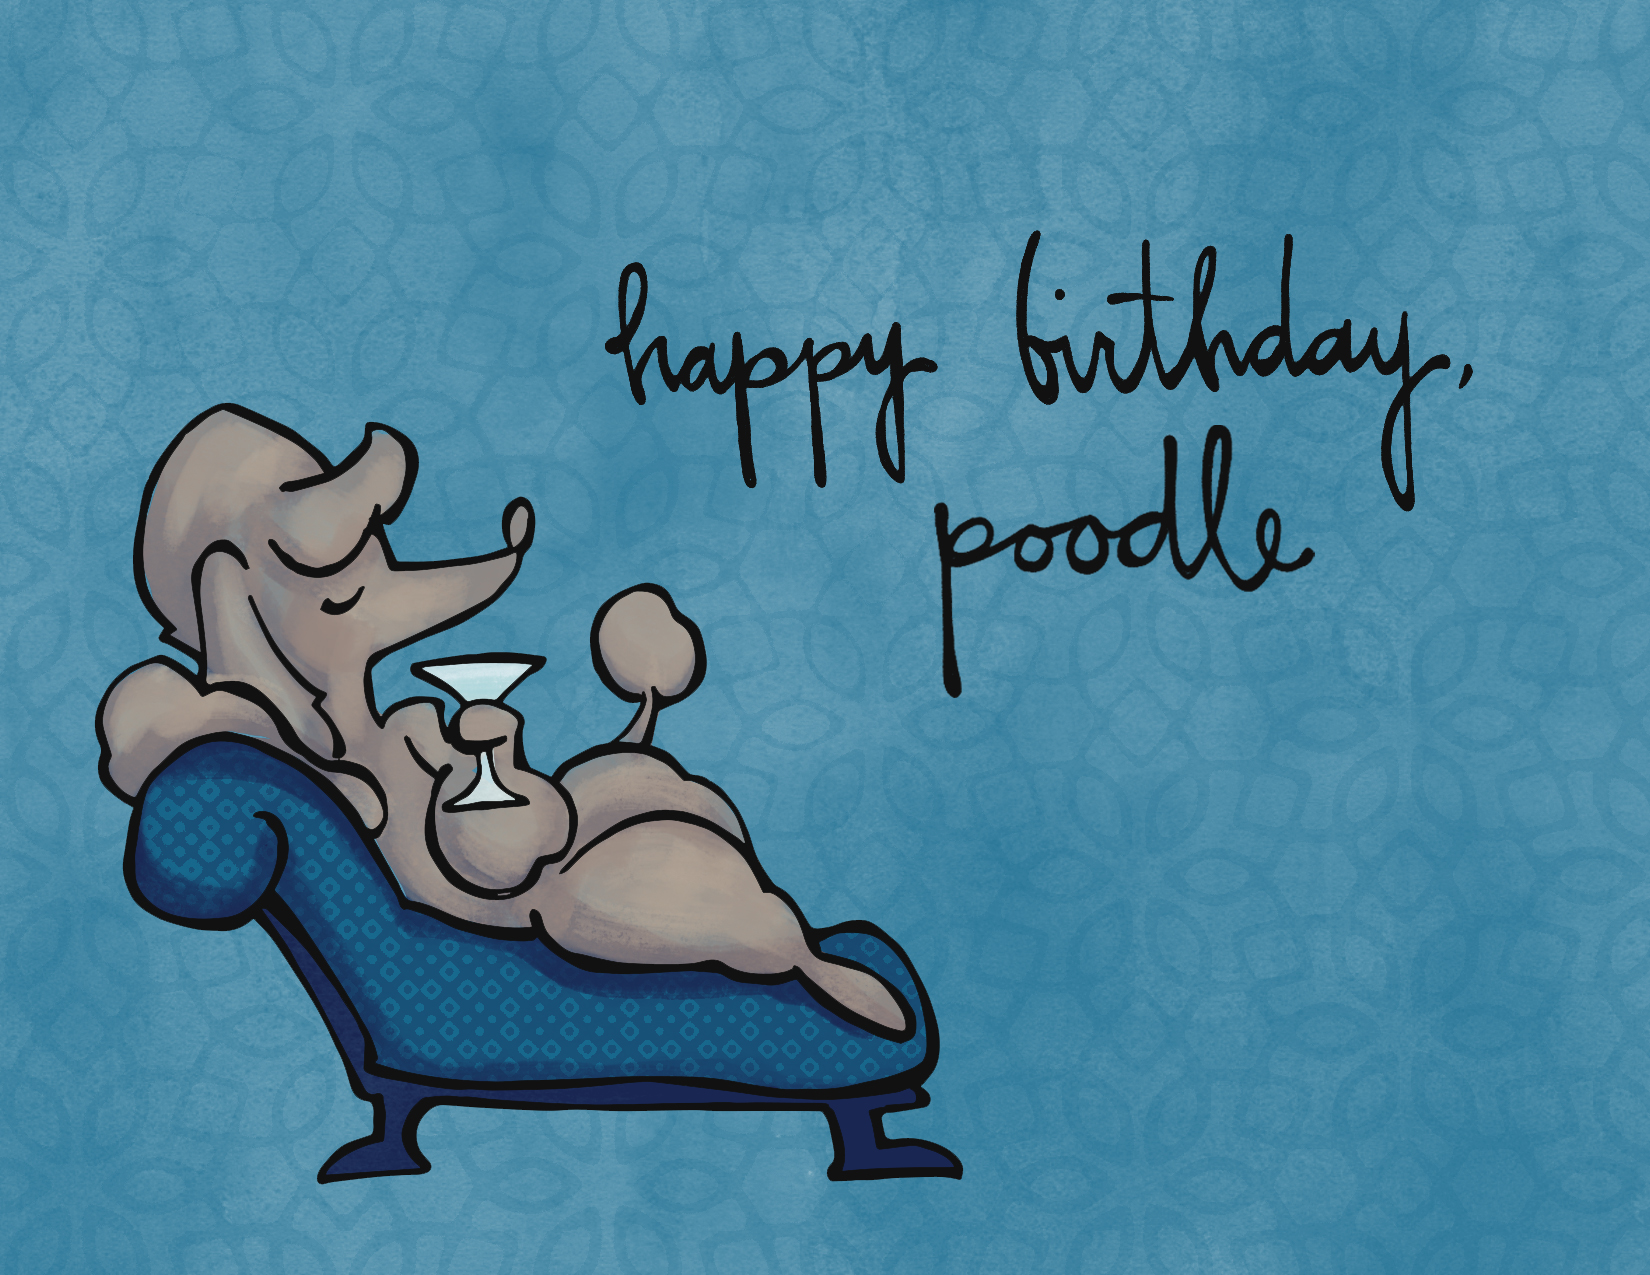 Birthday Poodle.jpg